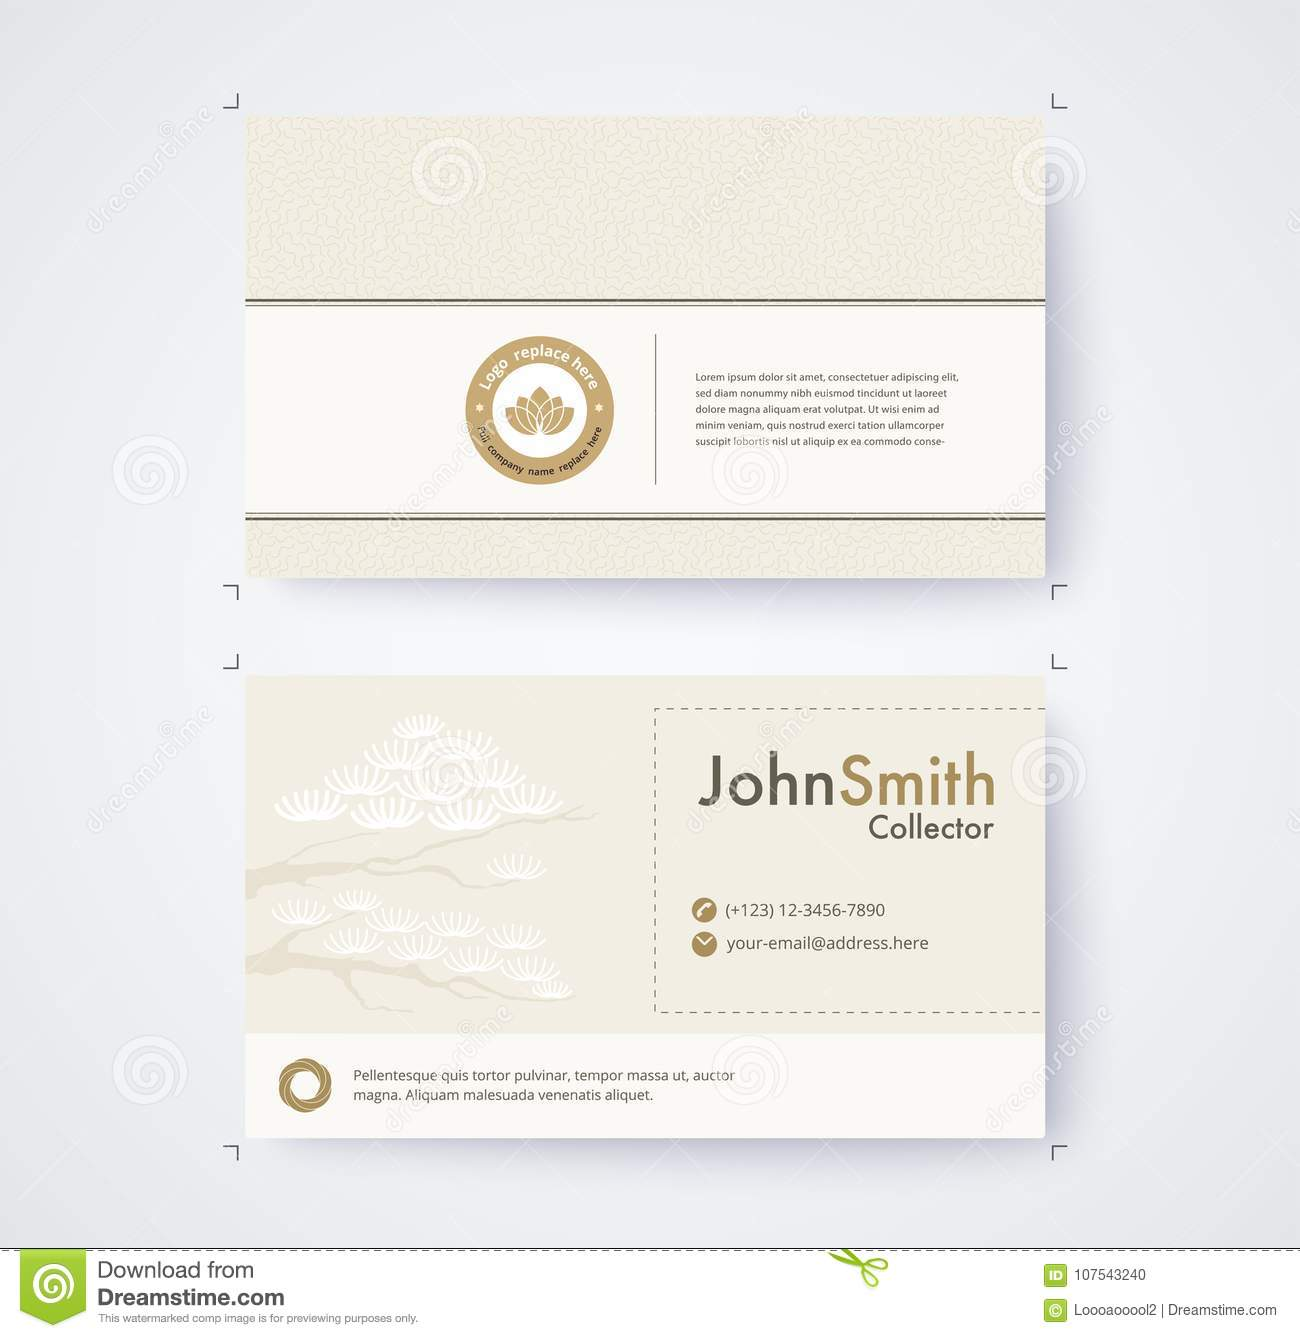 Business card template for commercial design on white background download business card template for commercial design on white background stock vector illustration of geomantry colourmoves